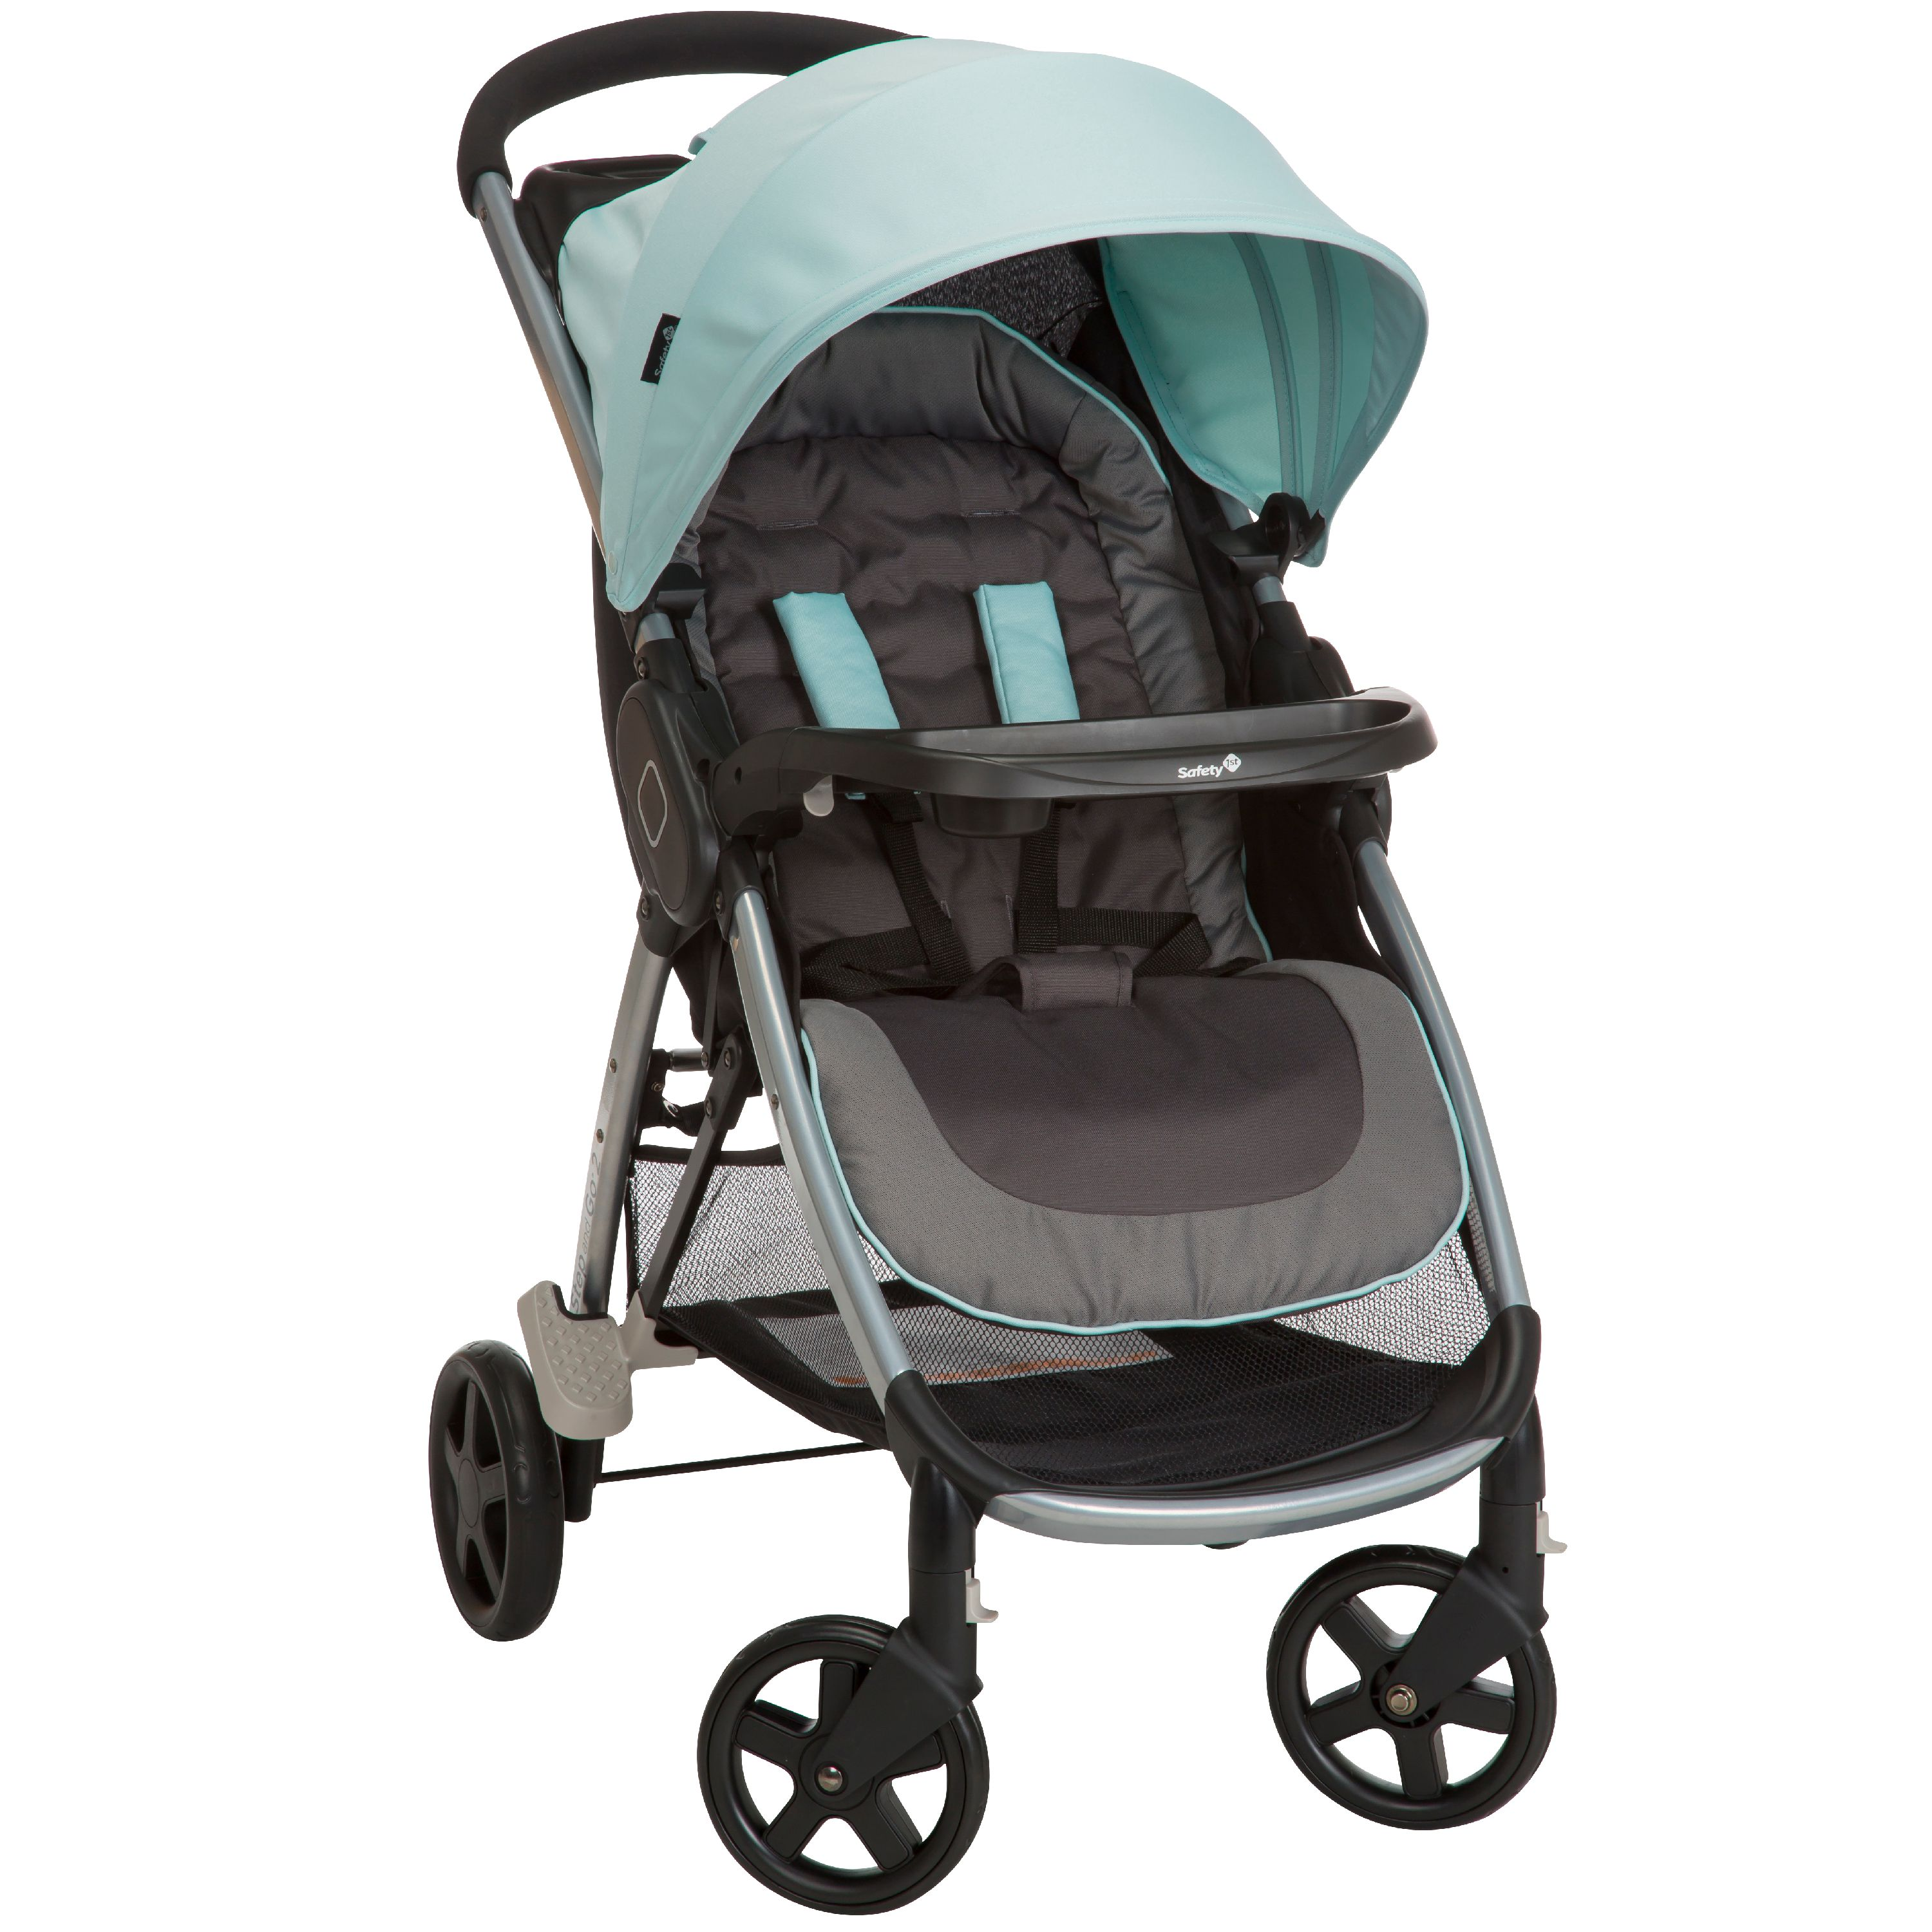 Safety 1st Step & Go Stroller